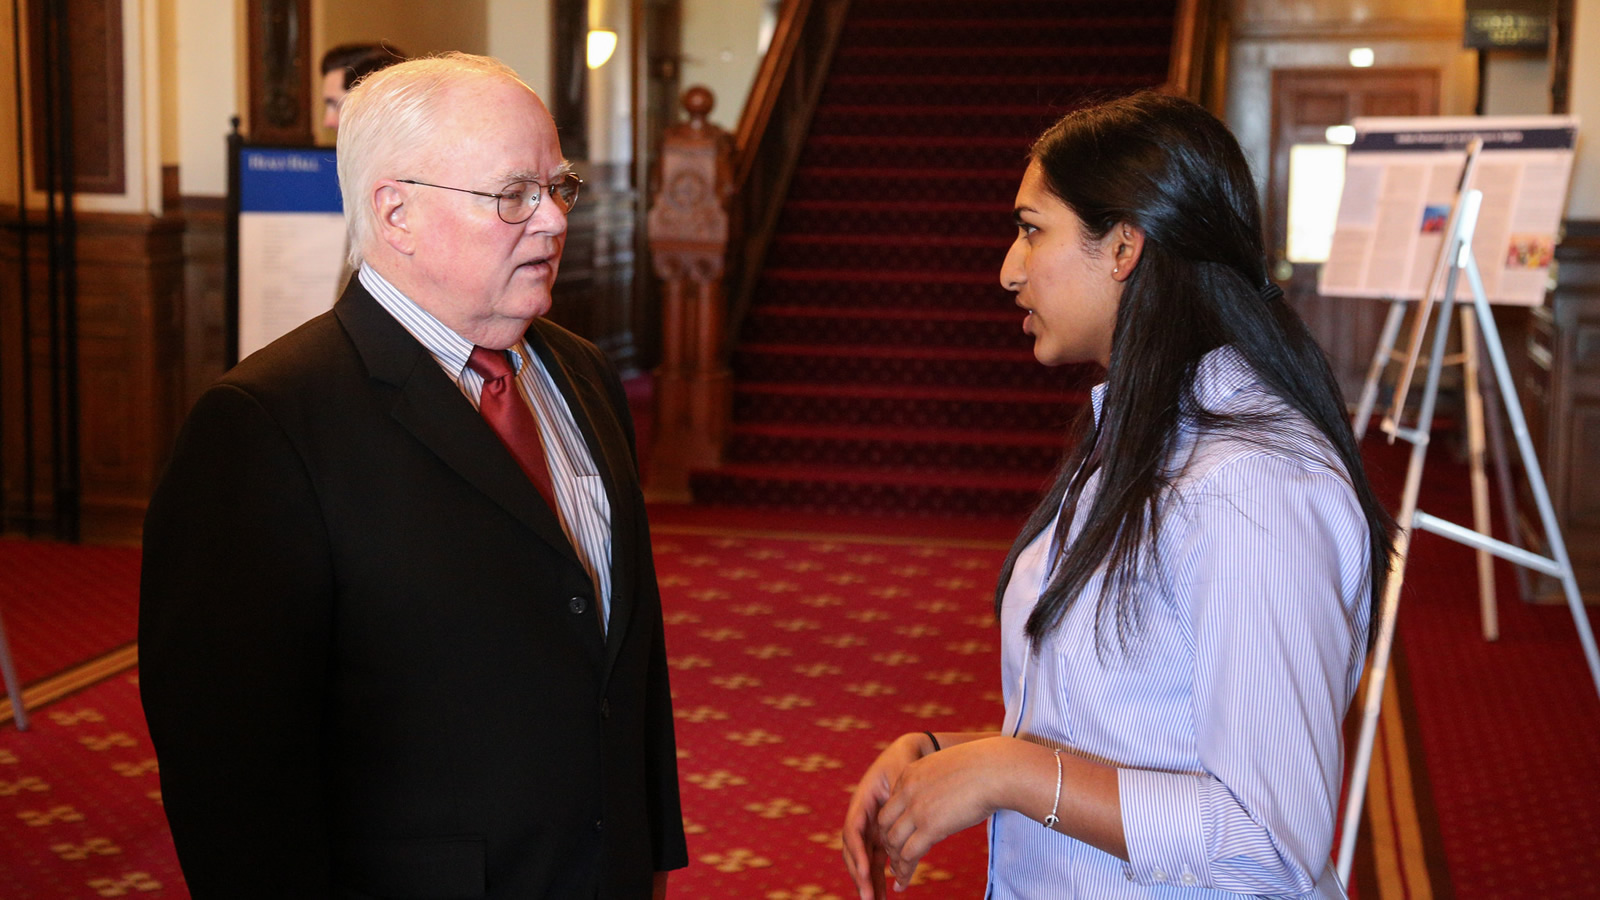 Fr. David Hollenbach, S.J., Talking with student Harshita Nadimpalli